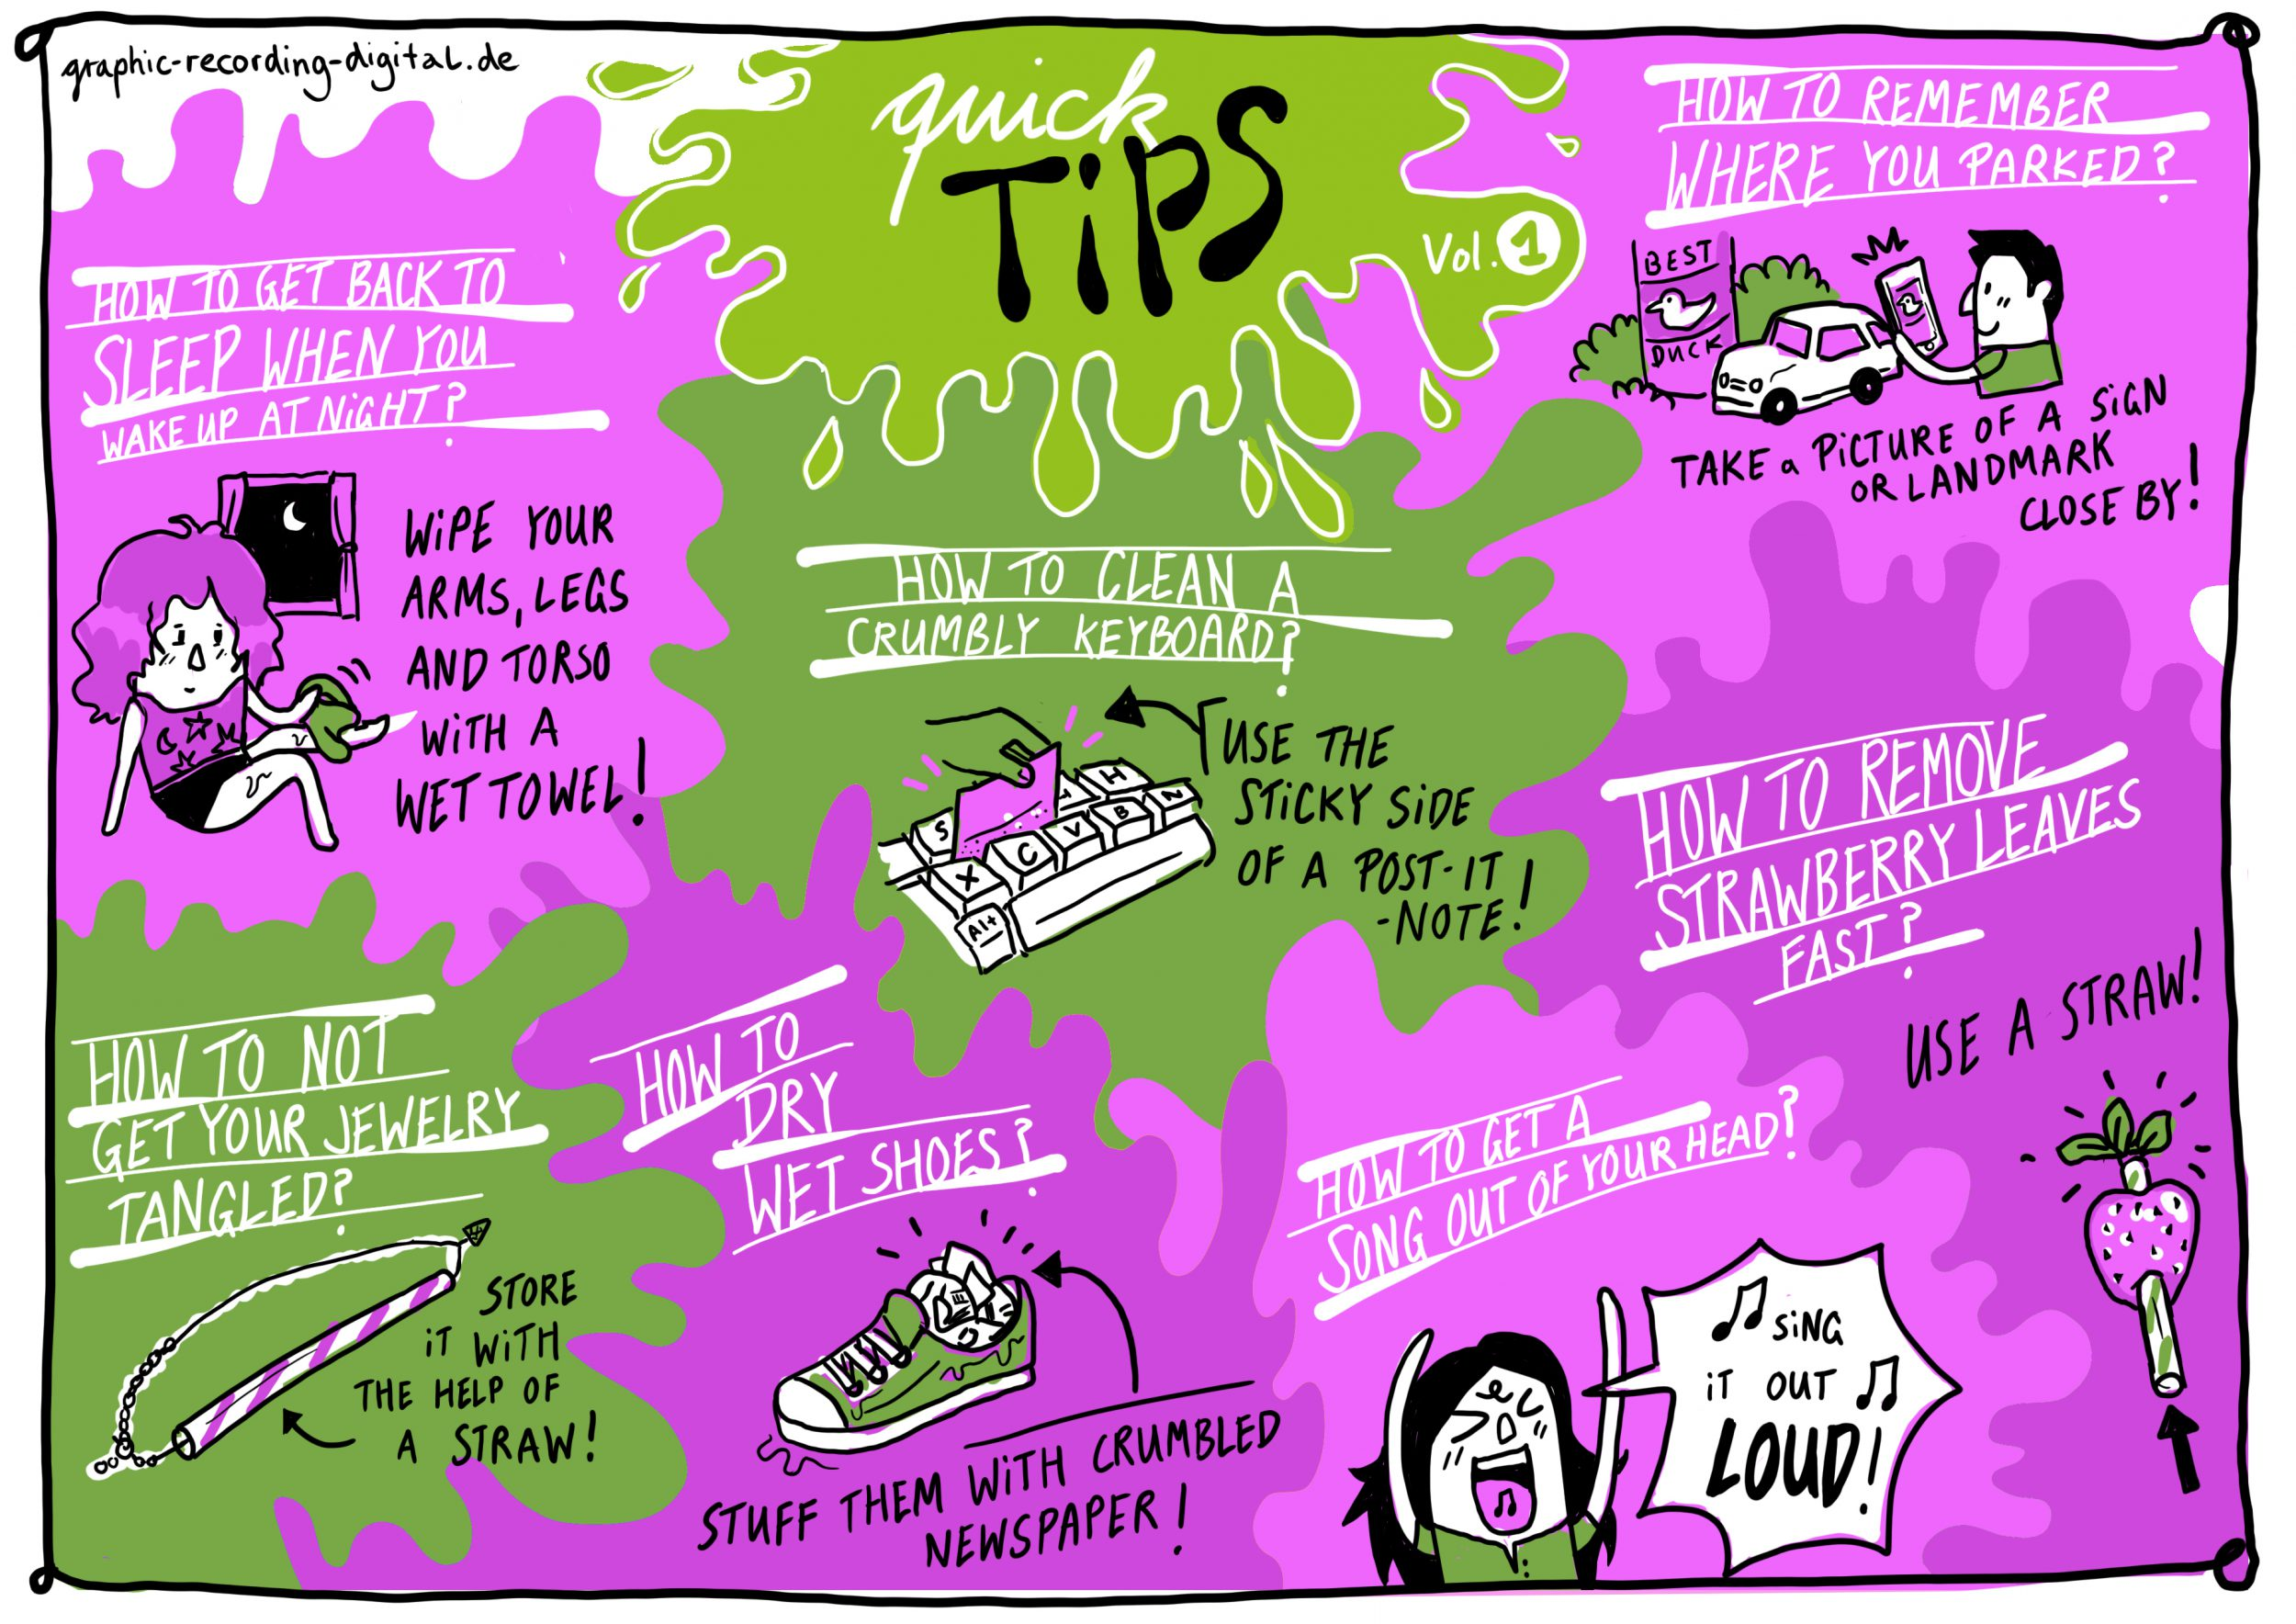 Quick tips designdoppel graphic recording